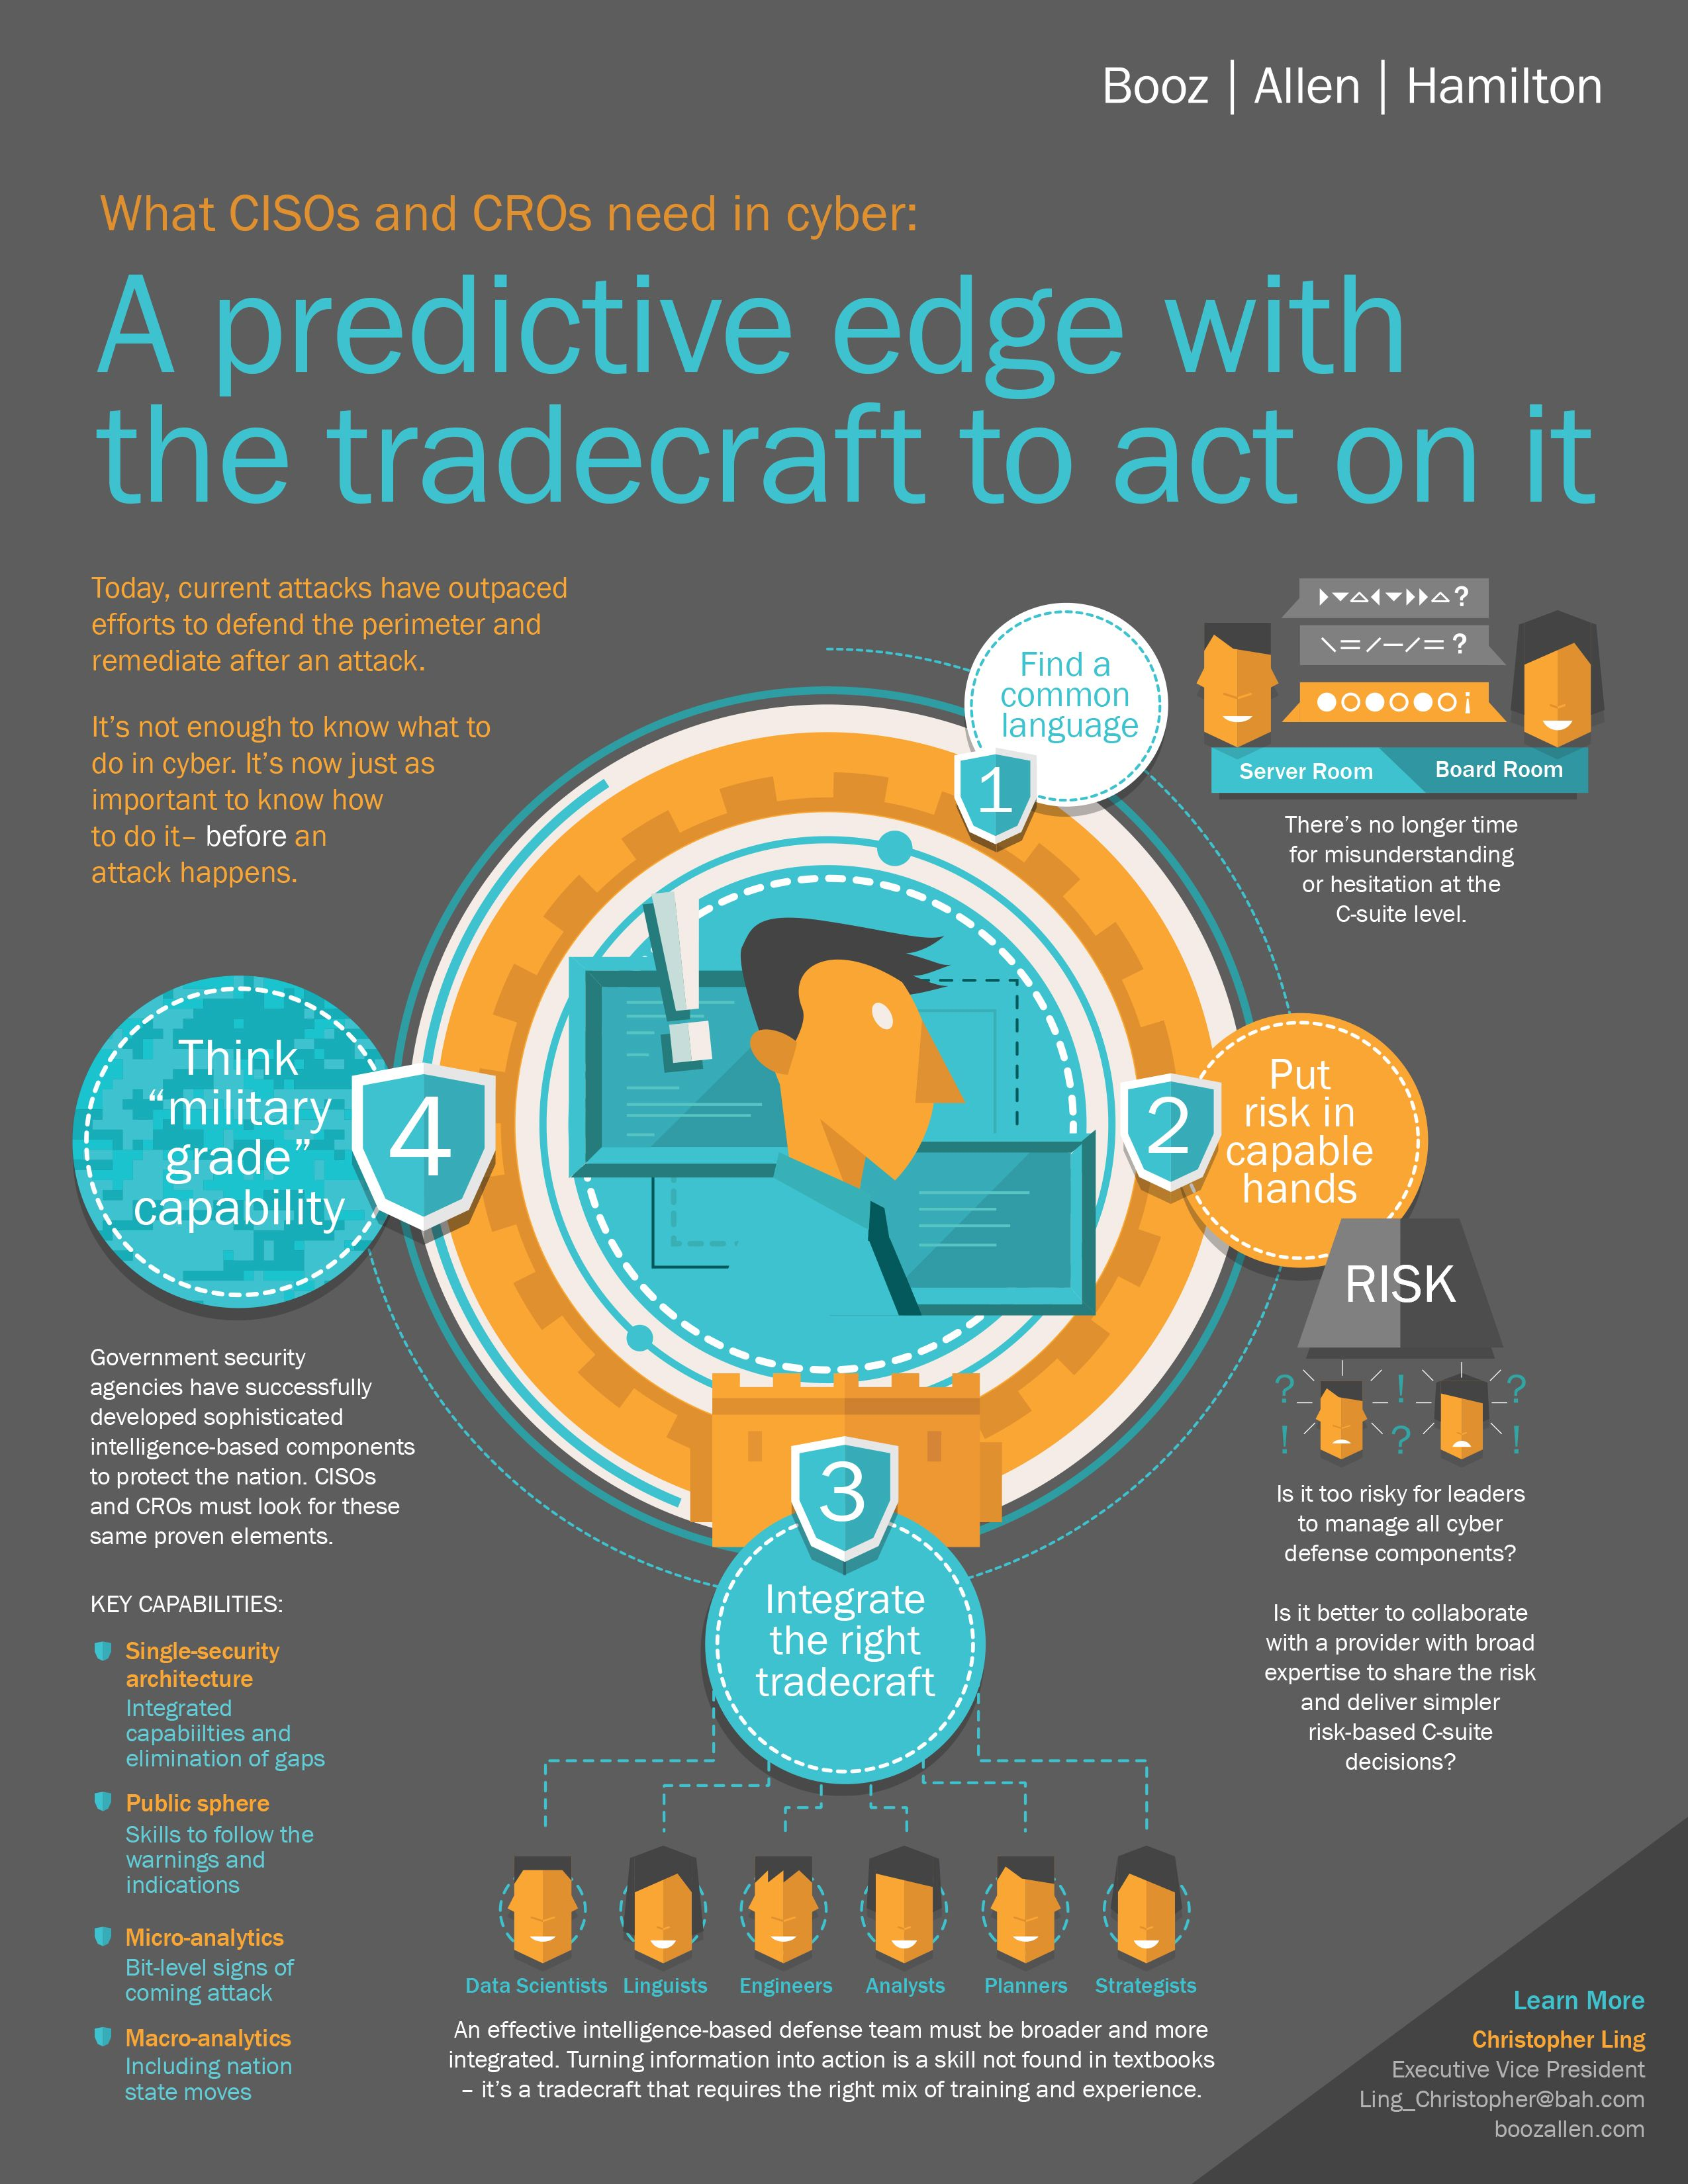 Download Booz Allen S Rsa Infographic And See What Every Ciso And Cro Should Consider When Thinking About Their Cyber Security Infographic Cyber Security Cyber